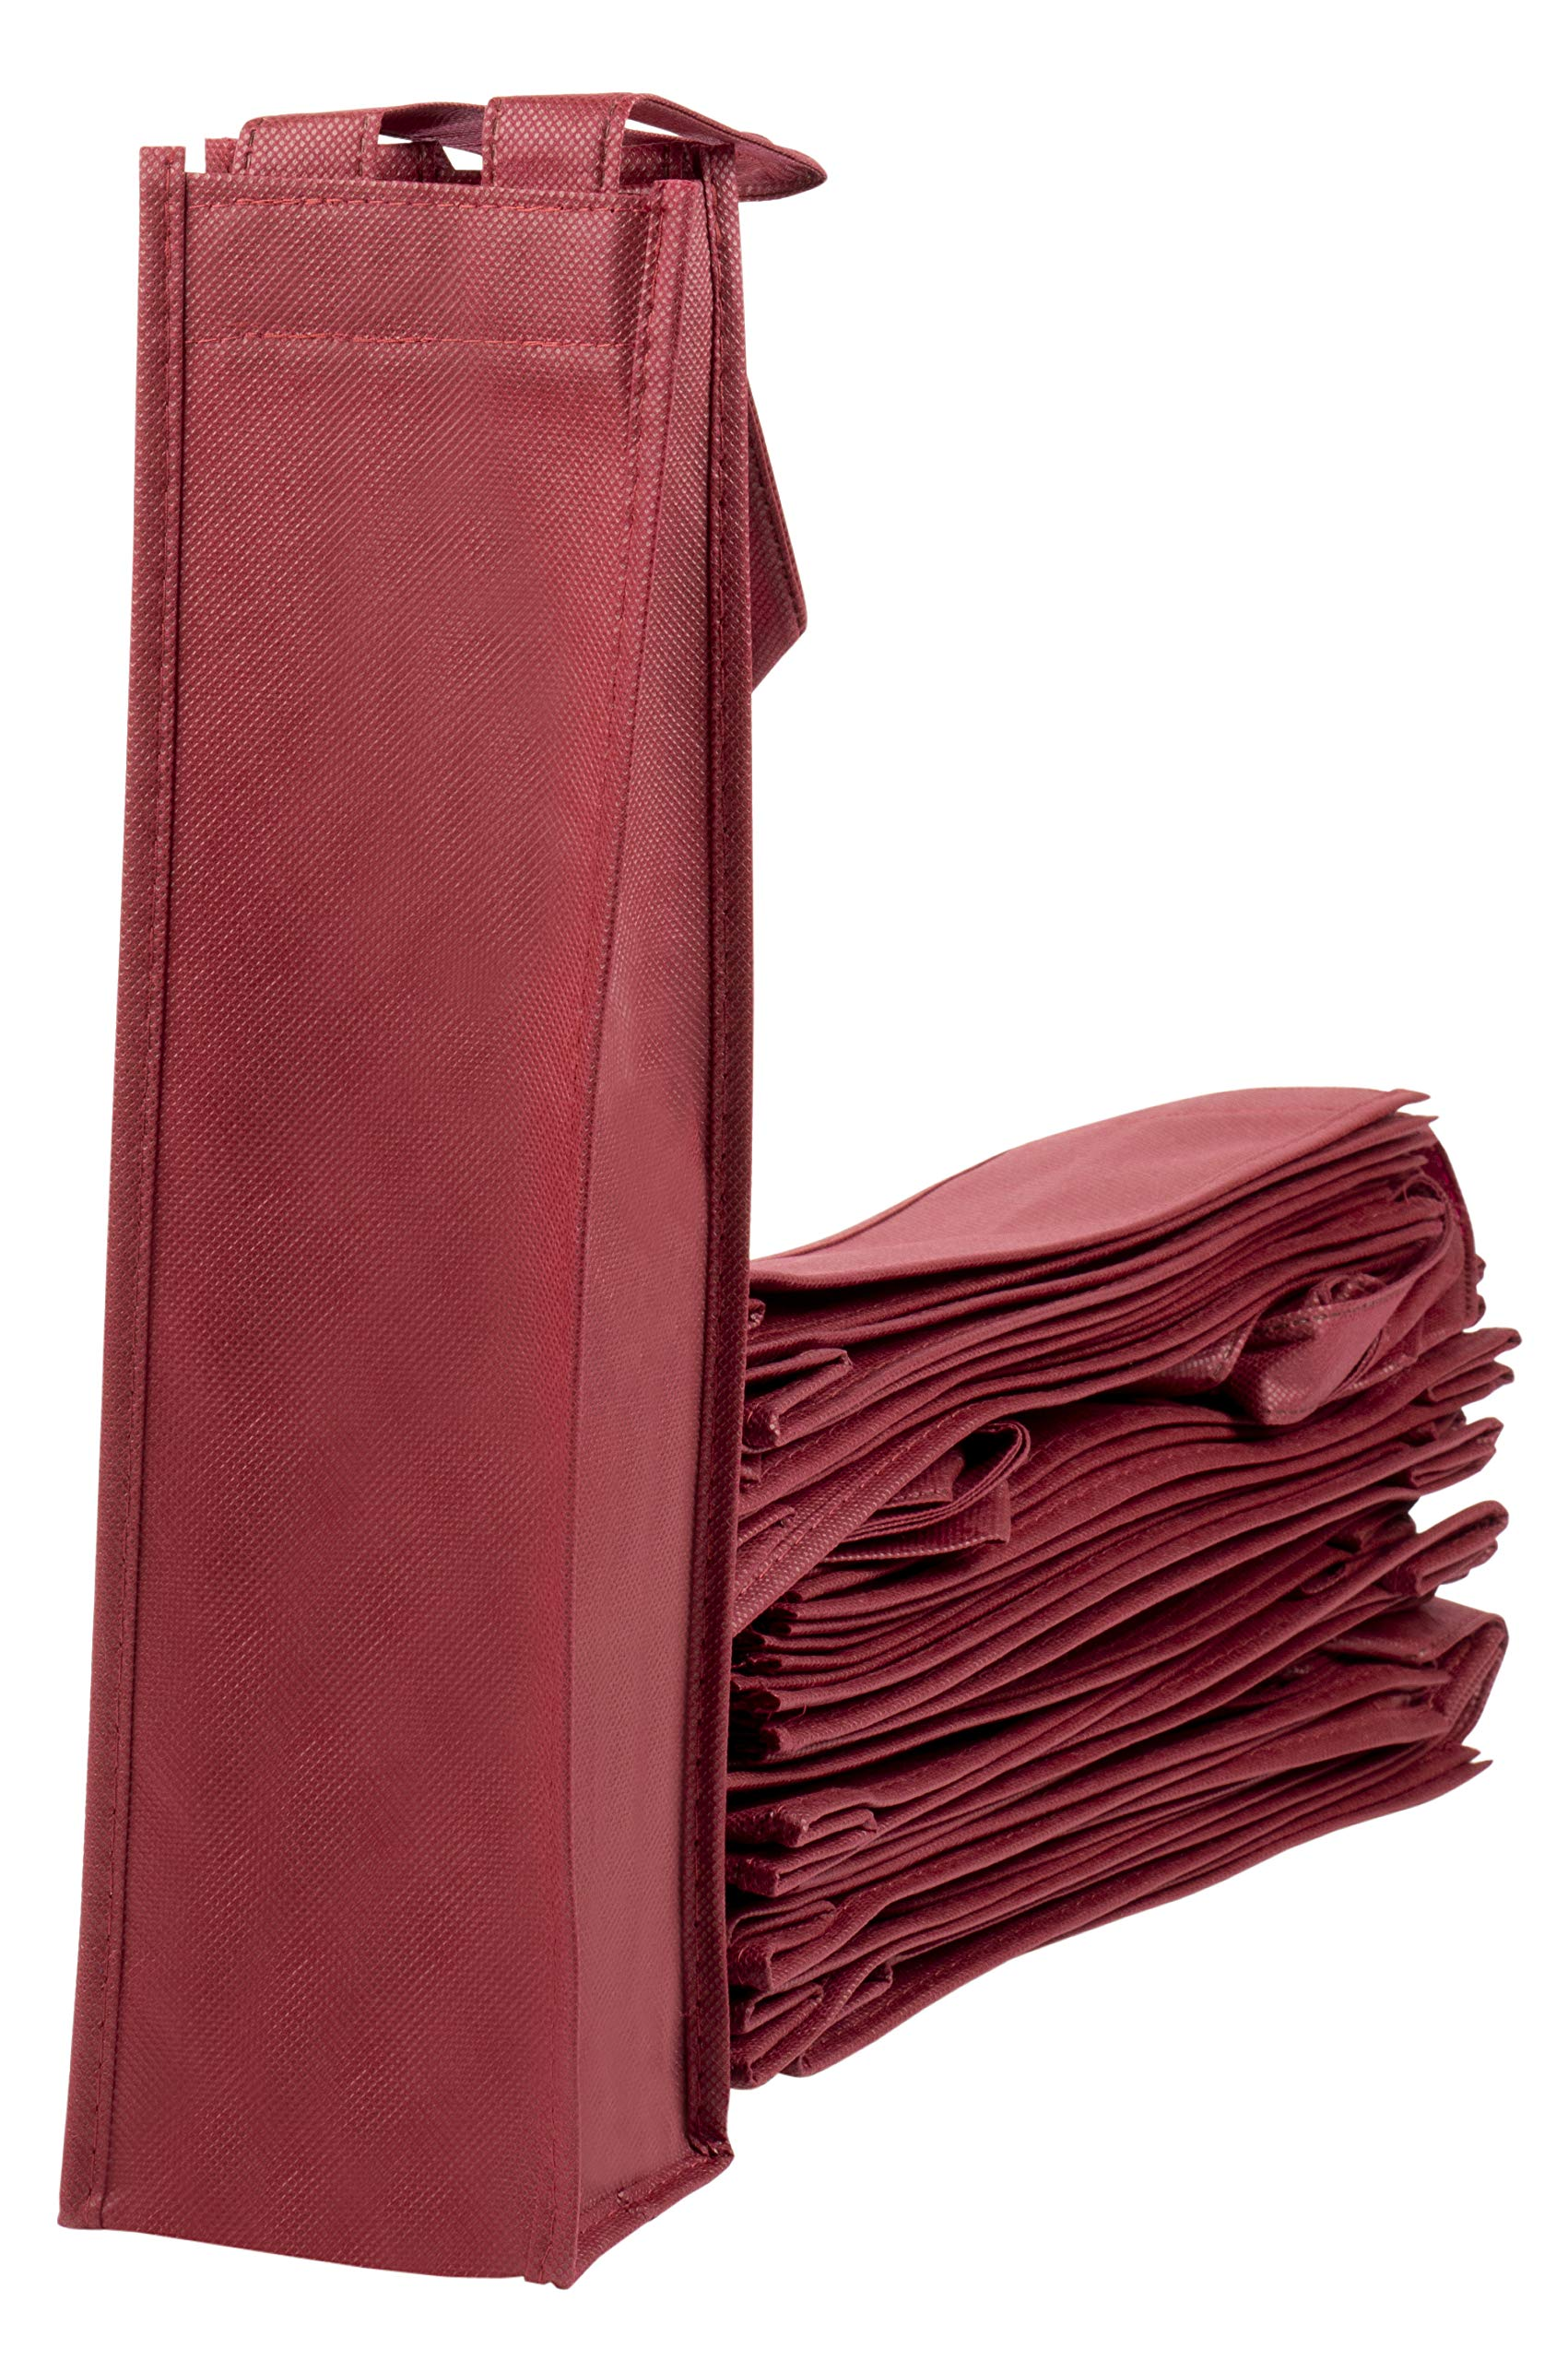 Wine Tote Bags - 20-Pack Non-Woven Single Bottle Wine Totes, Reusable Wine Carrying Bags, Ideal Bottle Gift Bags for Wedding, Birthday, Housewarming, Dinner Parties, Wine Accessories, Burgundy